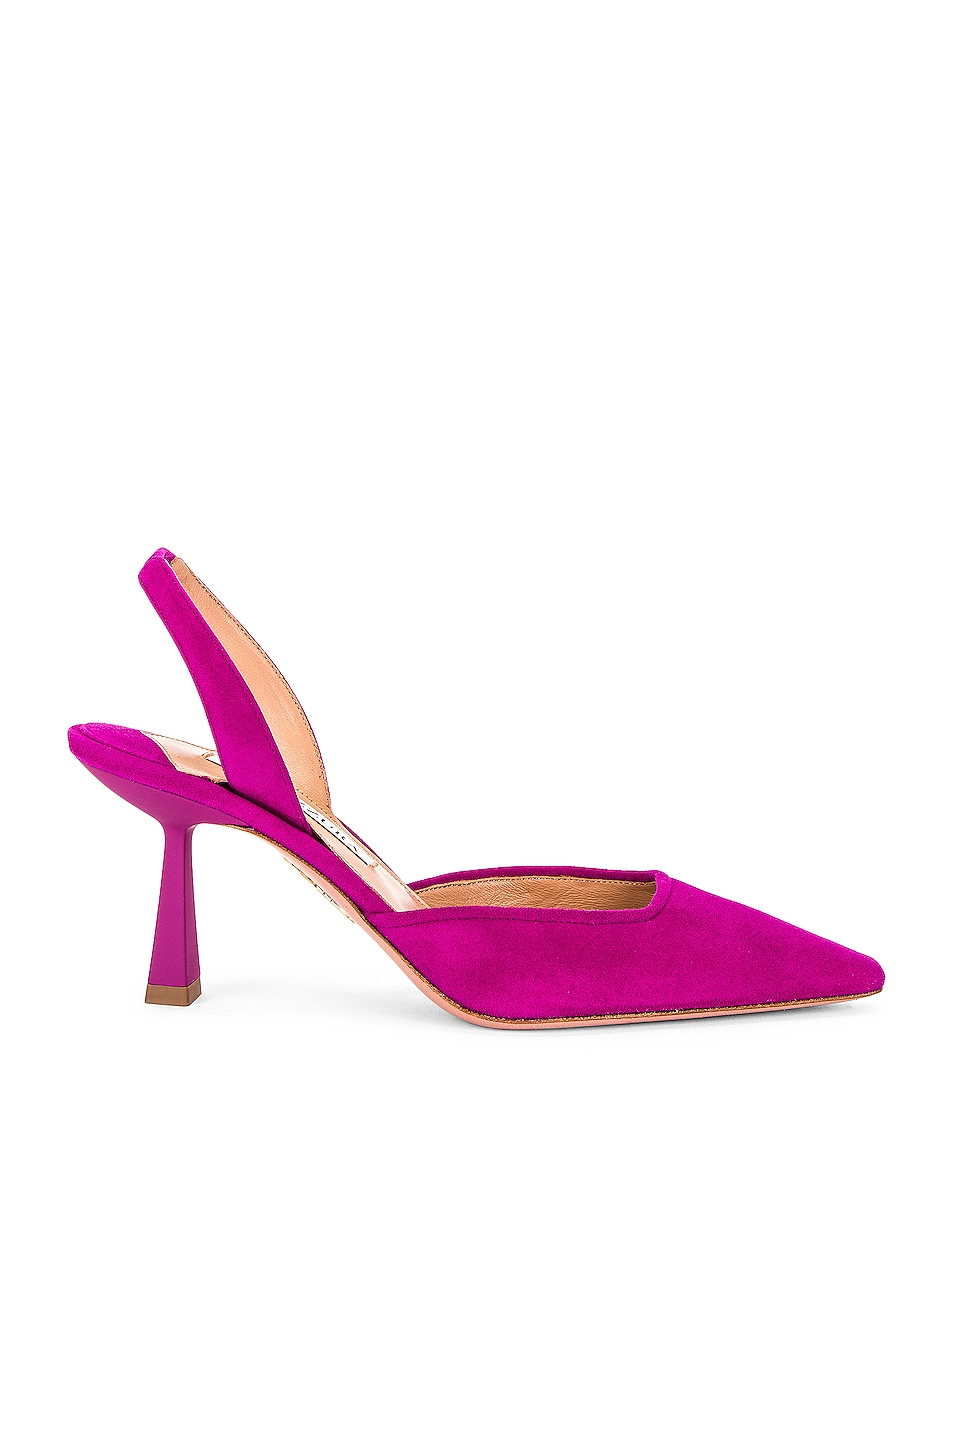 Image 1 of Aquazzura Maia 75 Slingback in Exotic Orchid